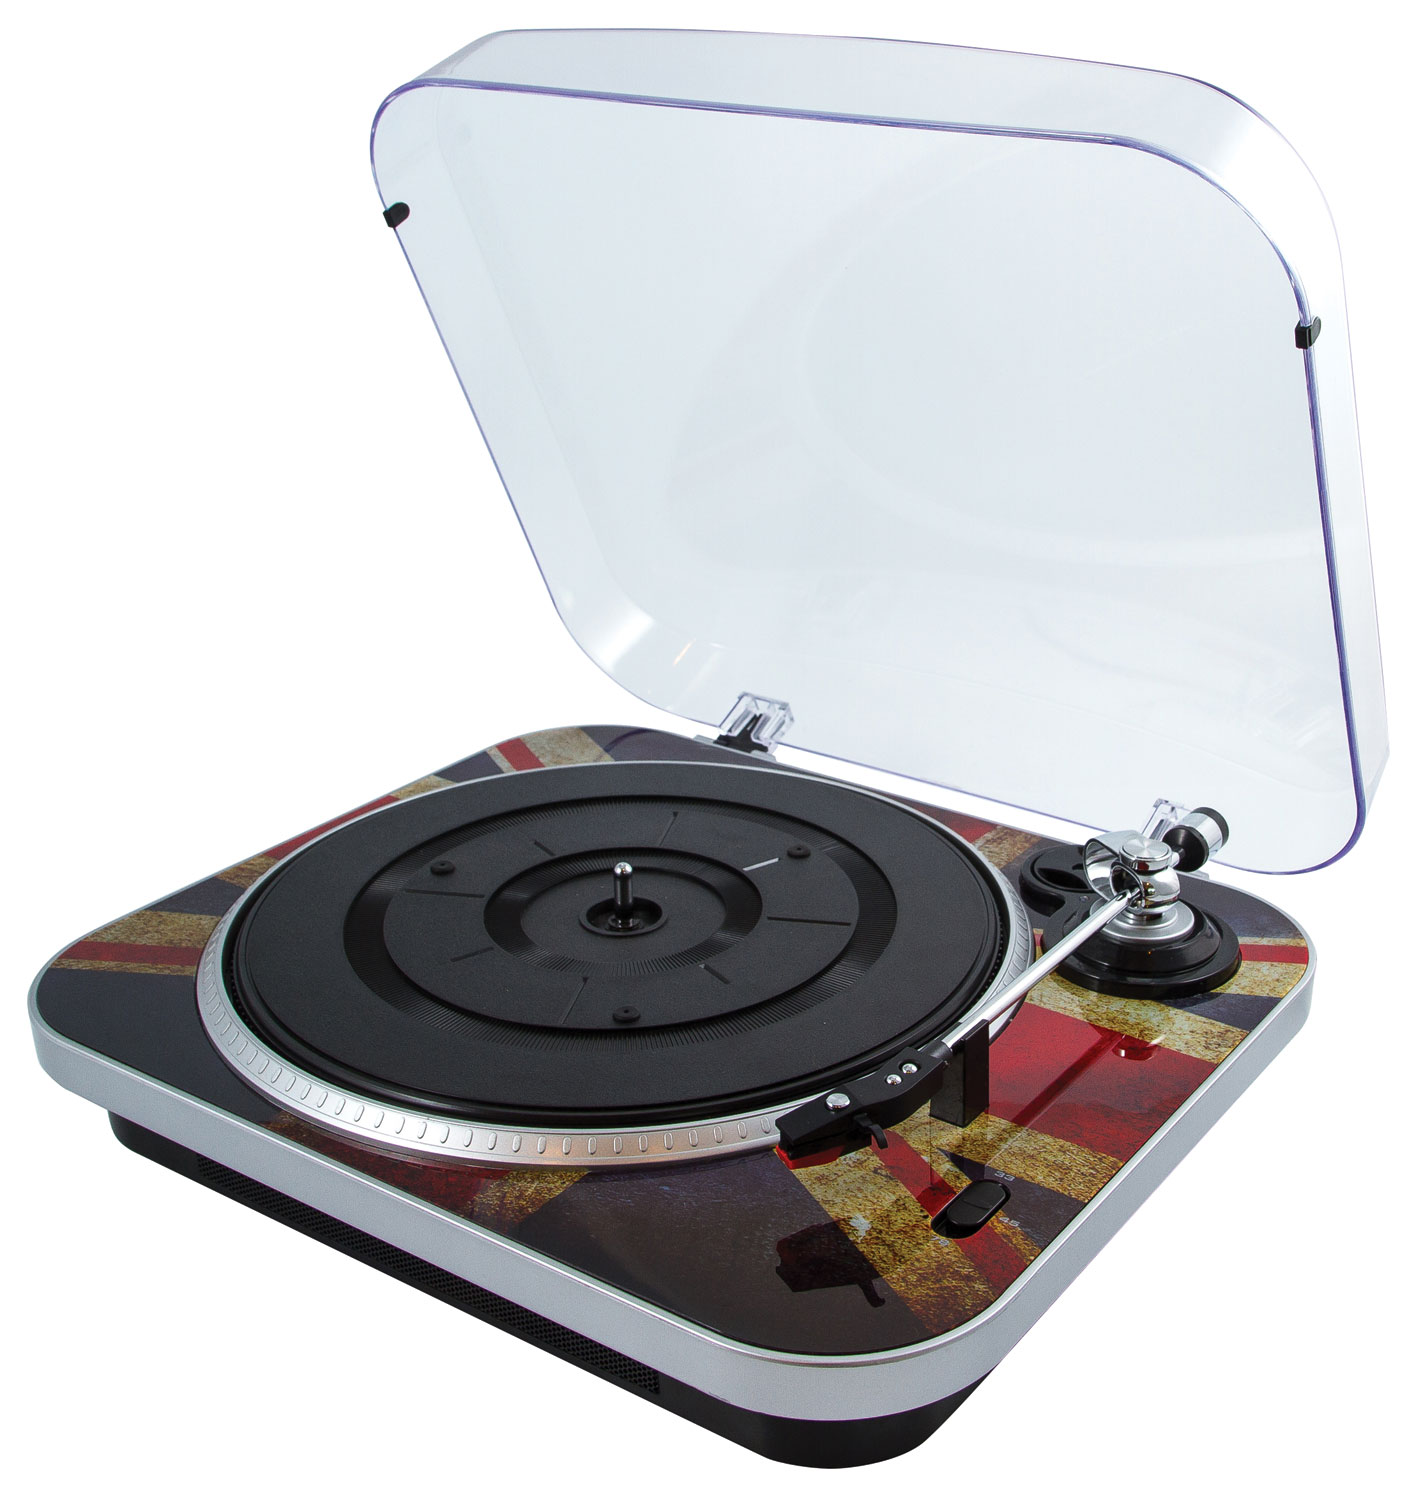 Peat Wholesale Personal Audio Turntables Record Players